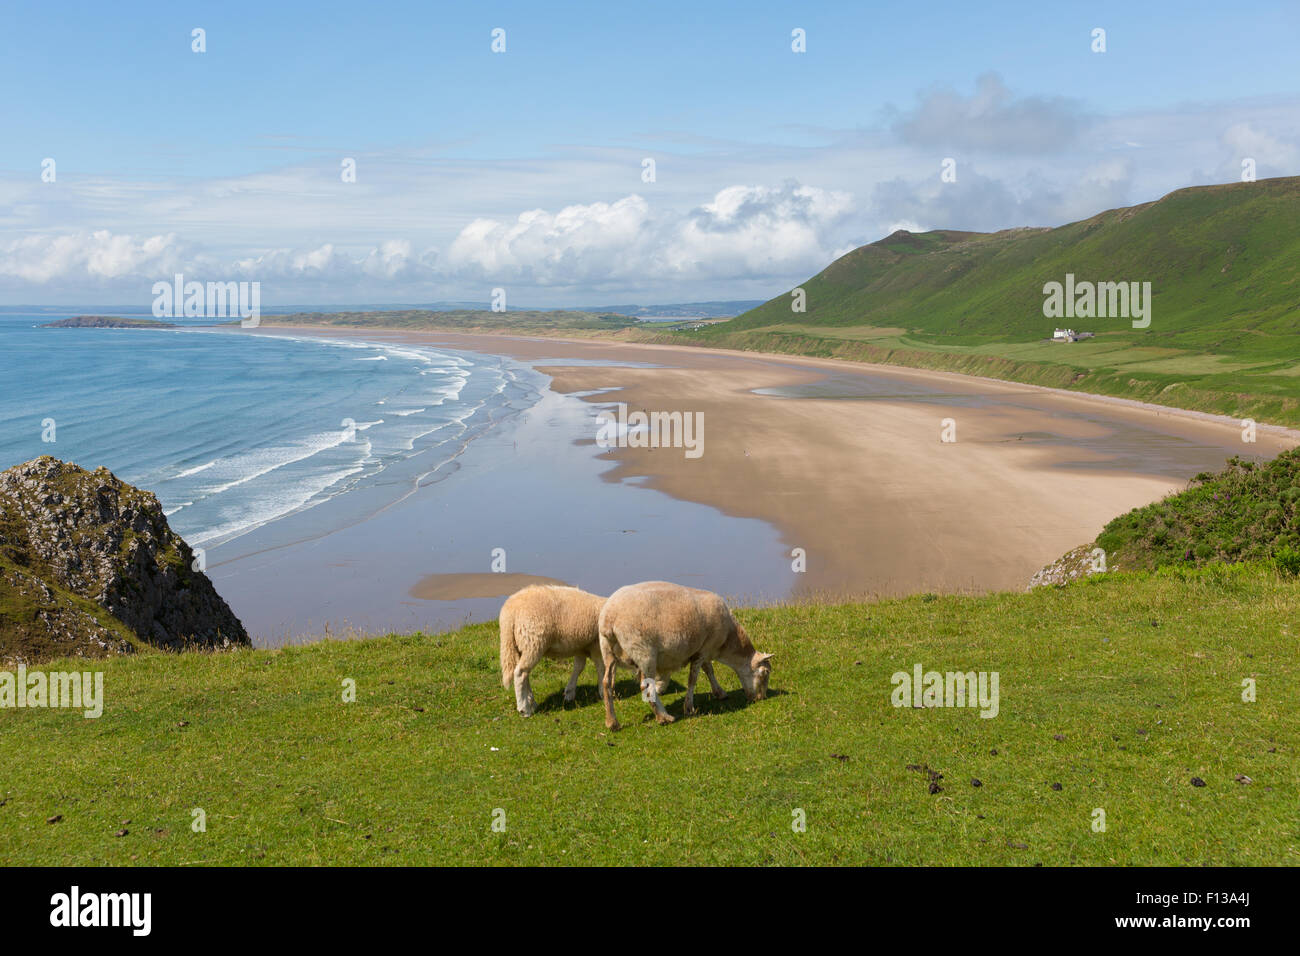 Rhossili beach The Gower peninsula South Wales coast with sheep grazing, one of the best beaches in the UK in summer - Stock Image